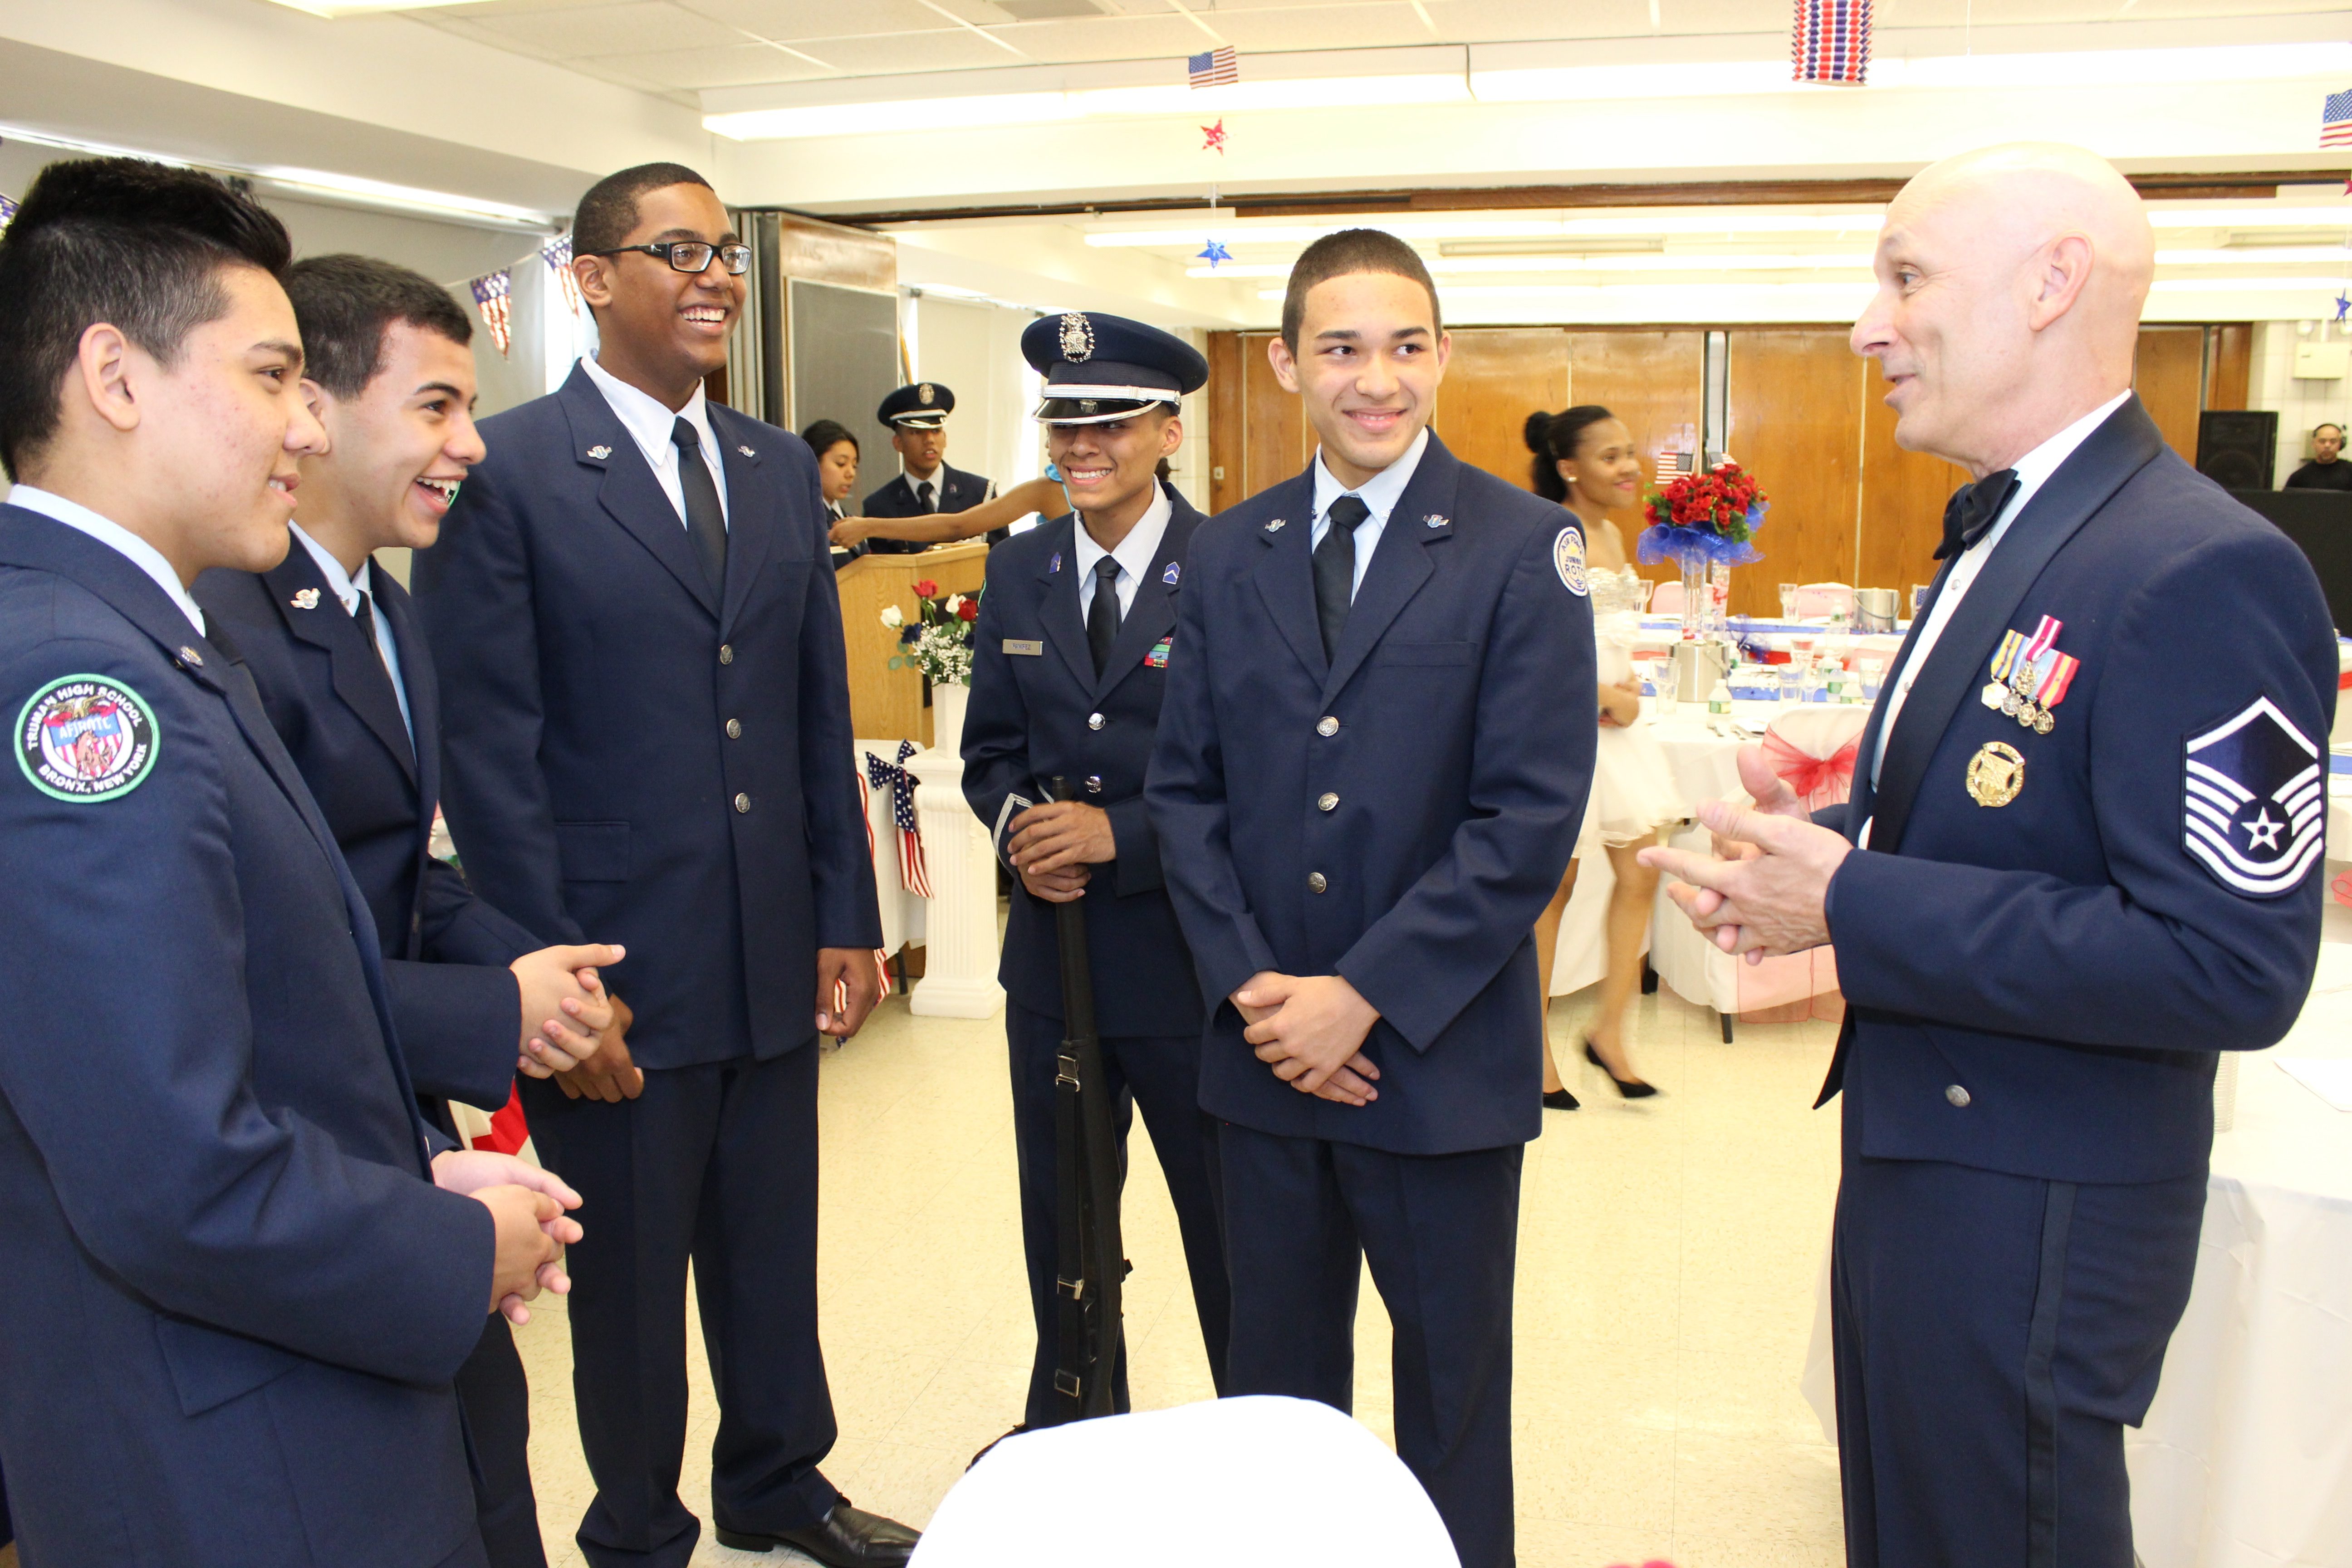 Air Force Jrotc Program Hosts Military Ball And Dining Out